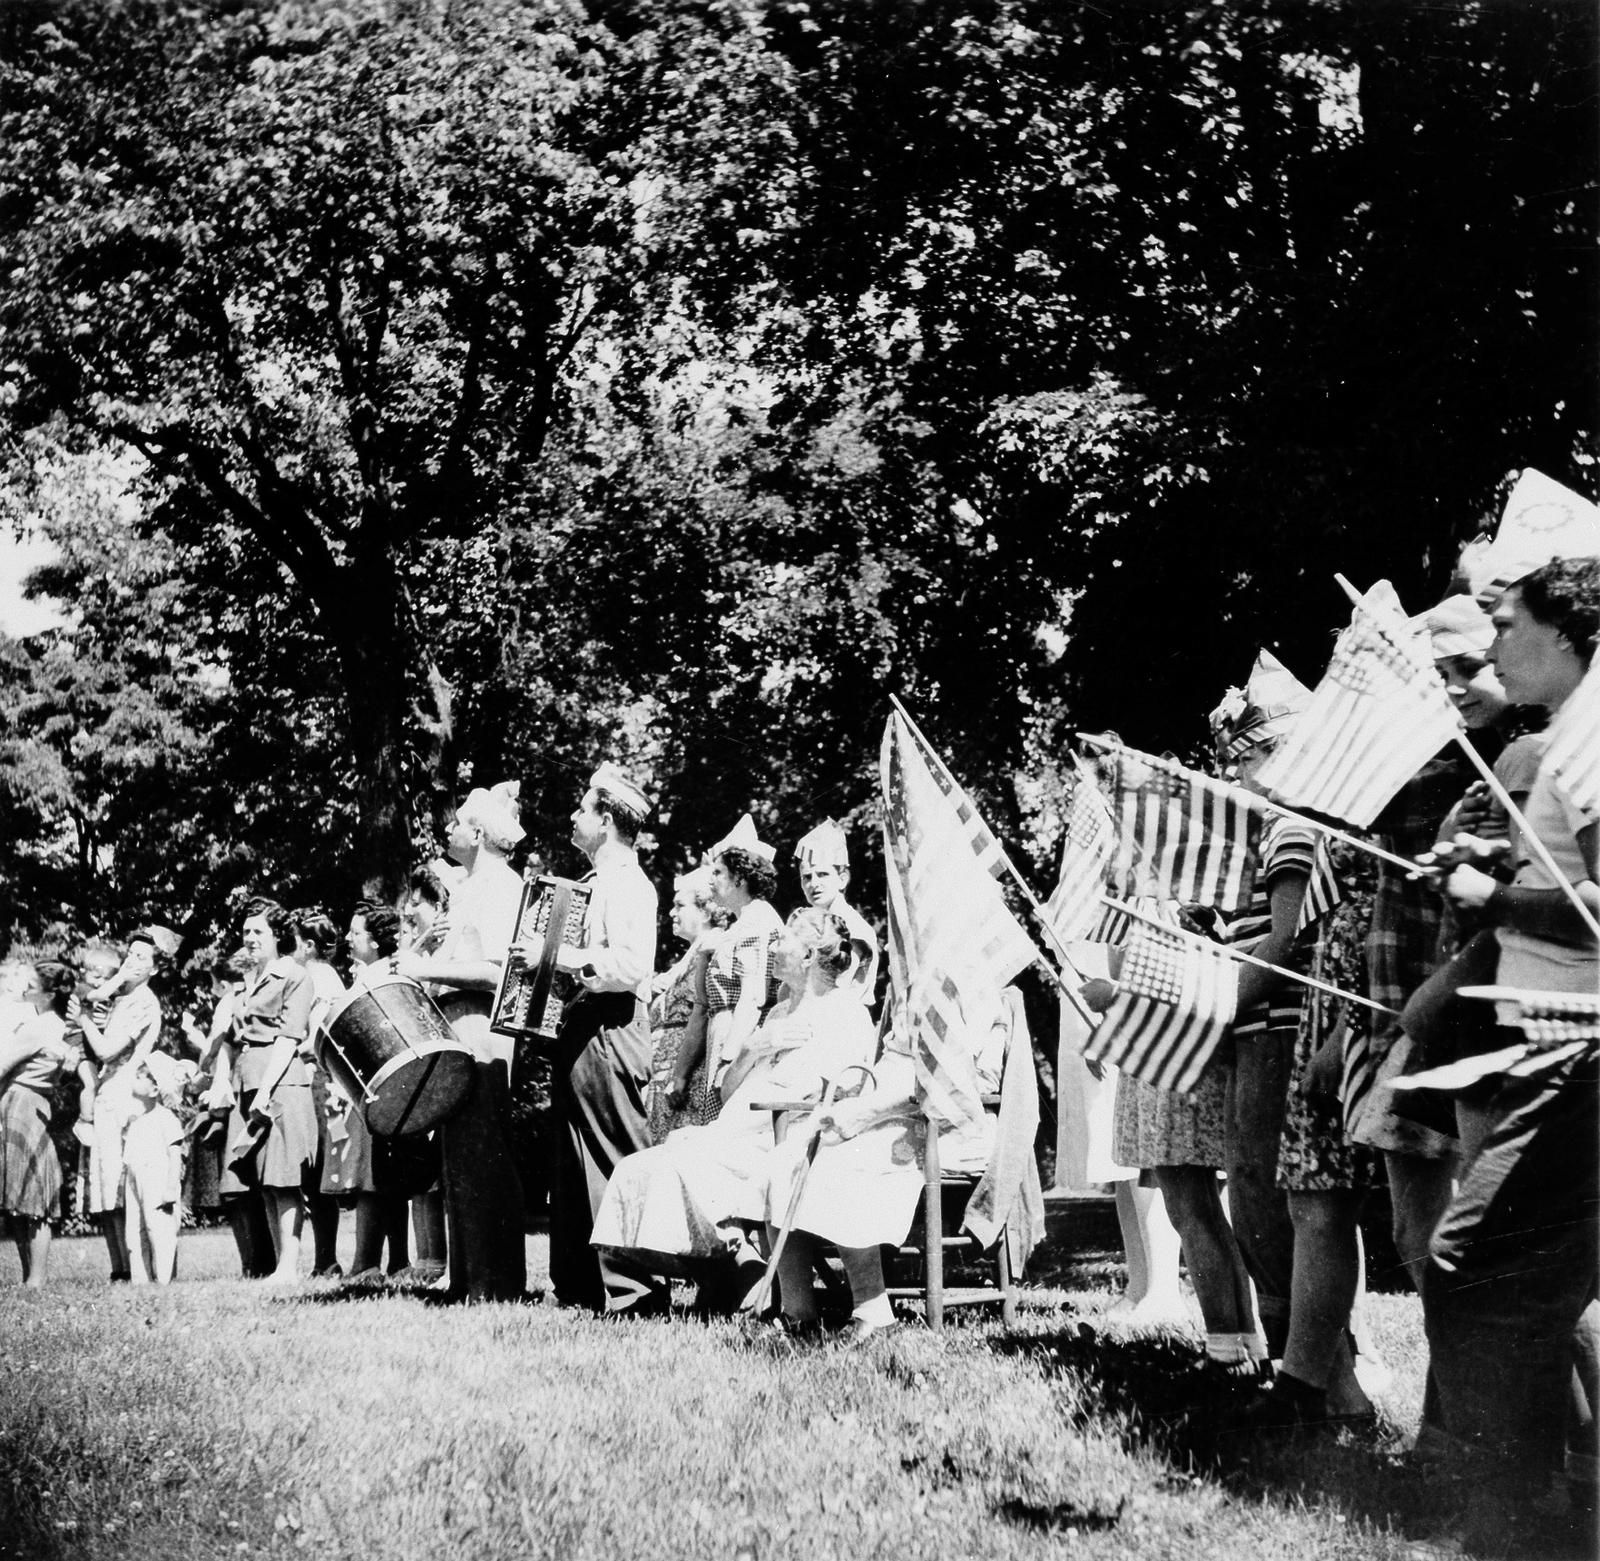 Children with drum, accordian, and flags